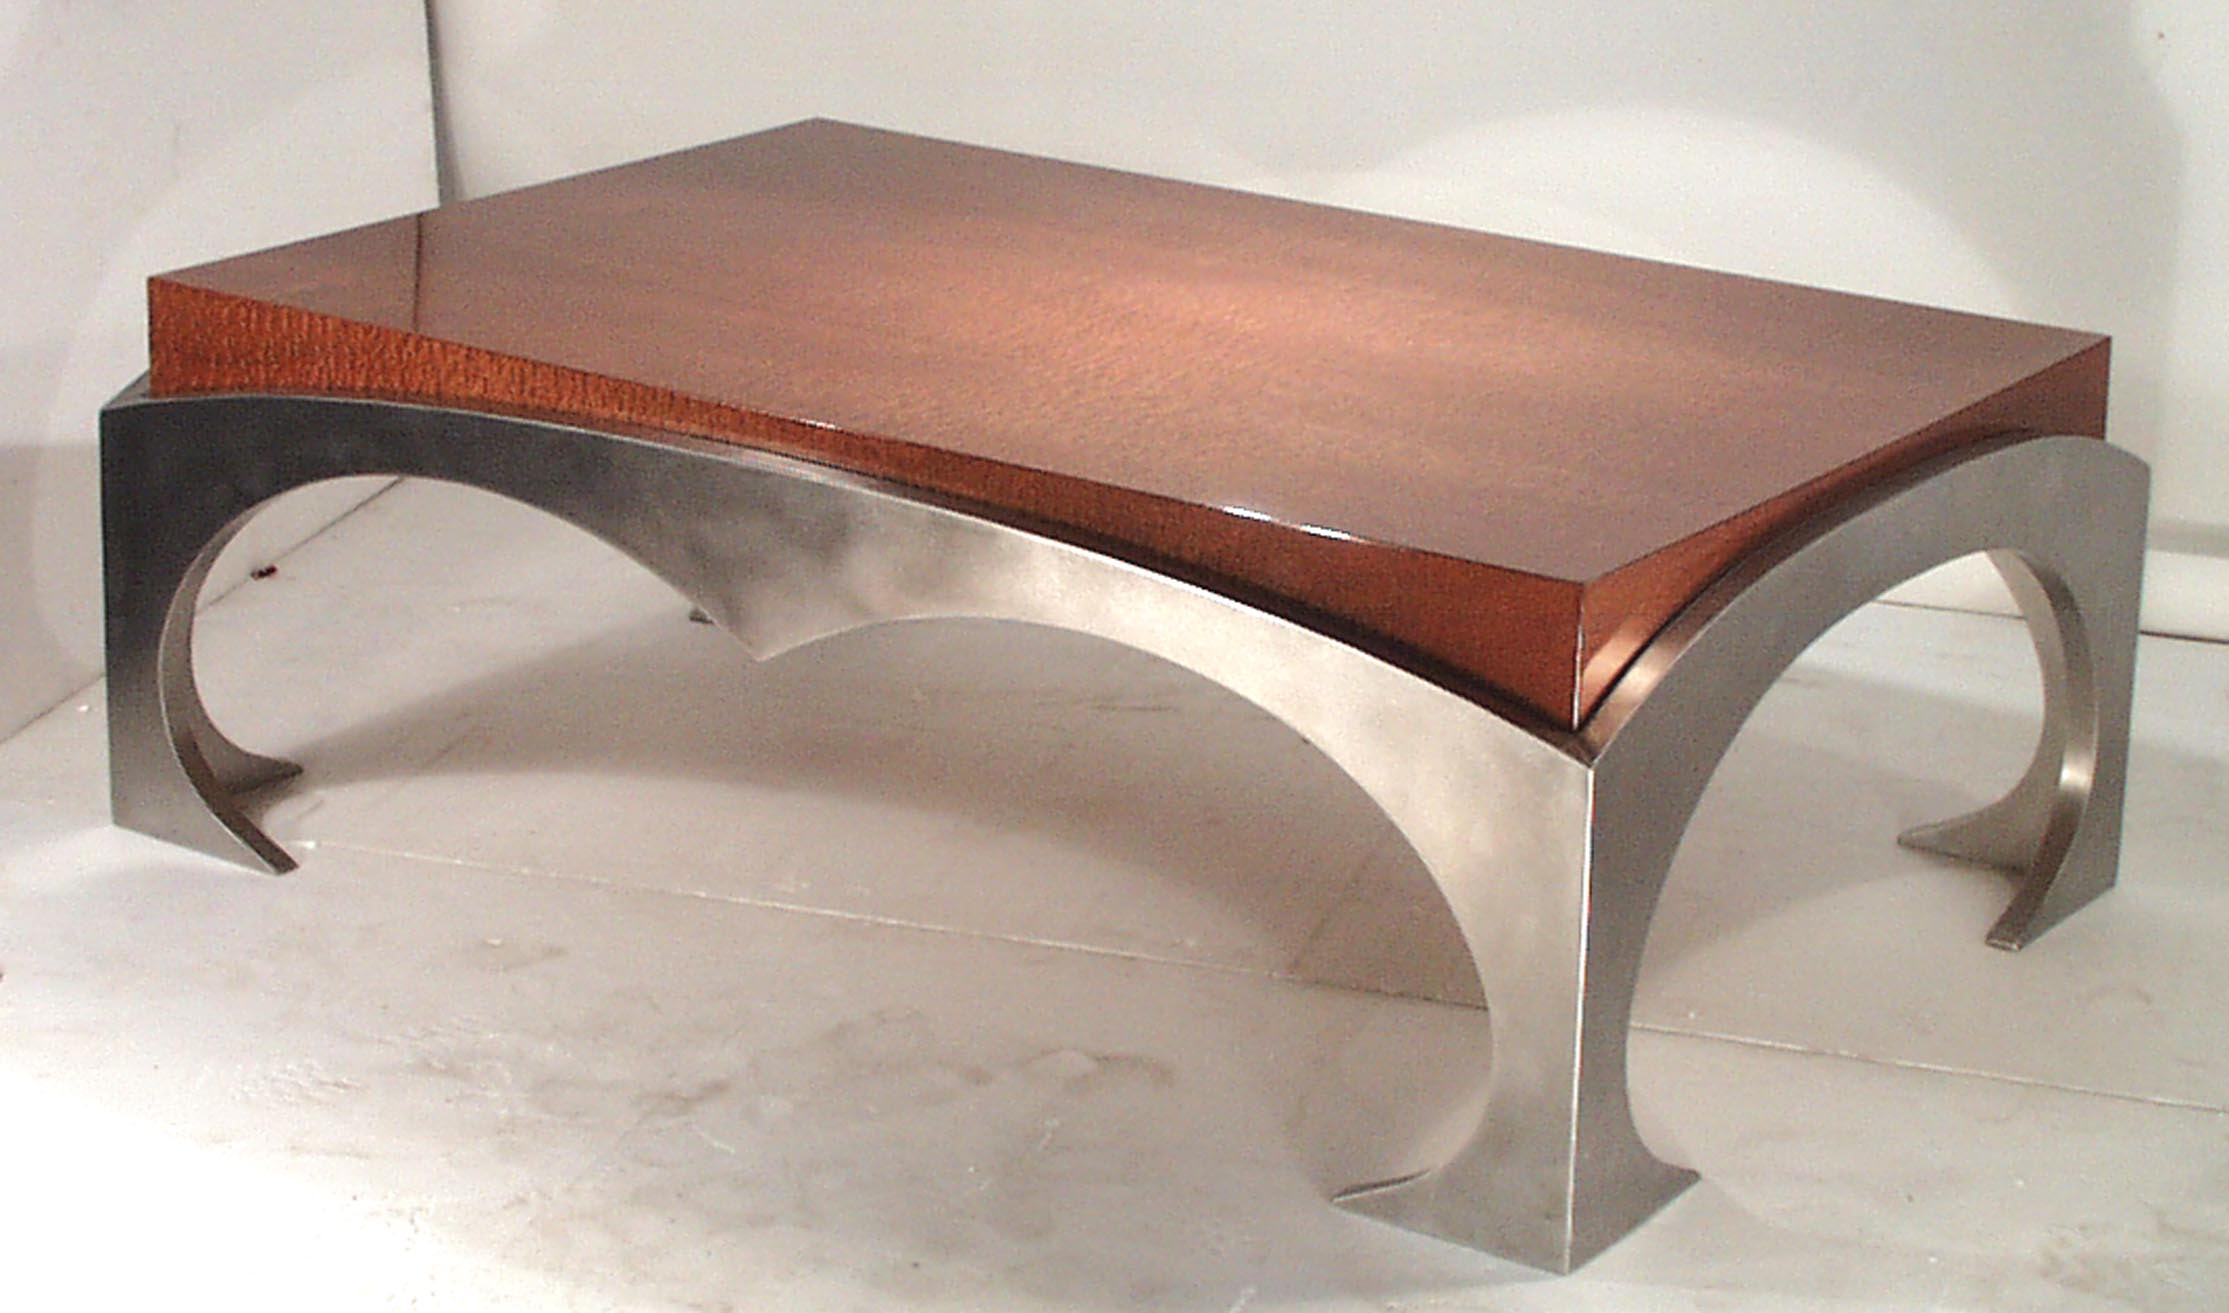 TABLES & BASES Gillberg Design Inc